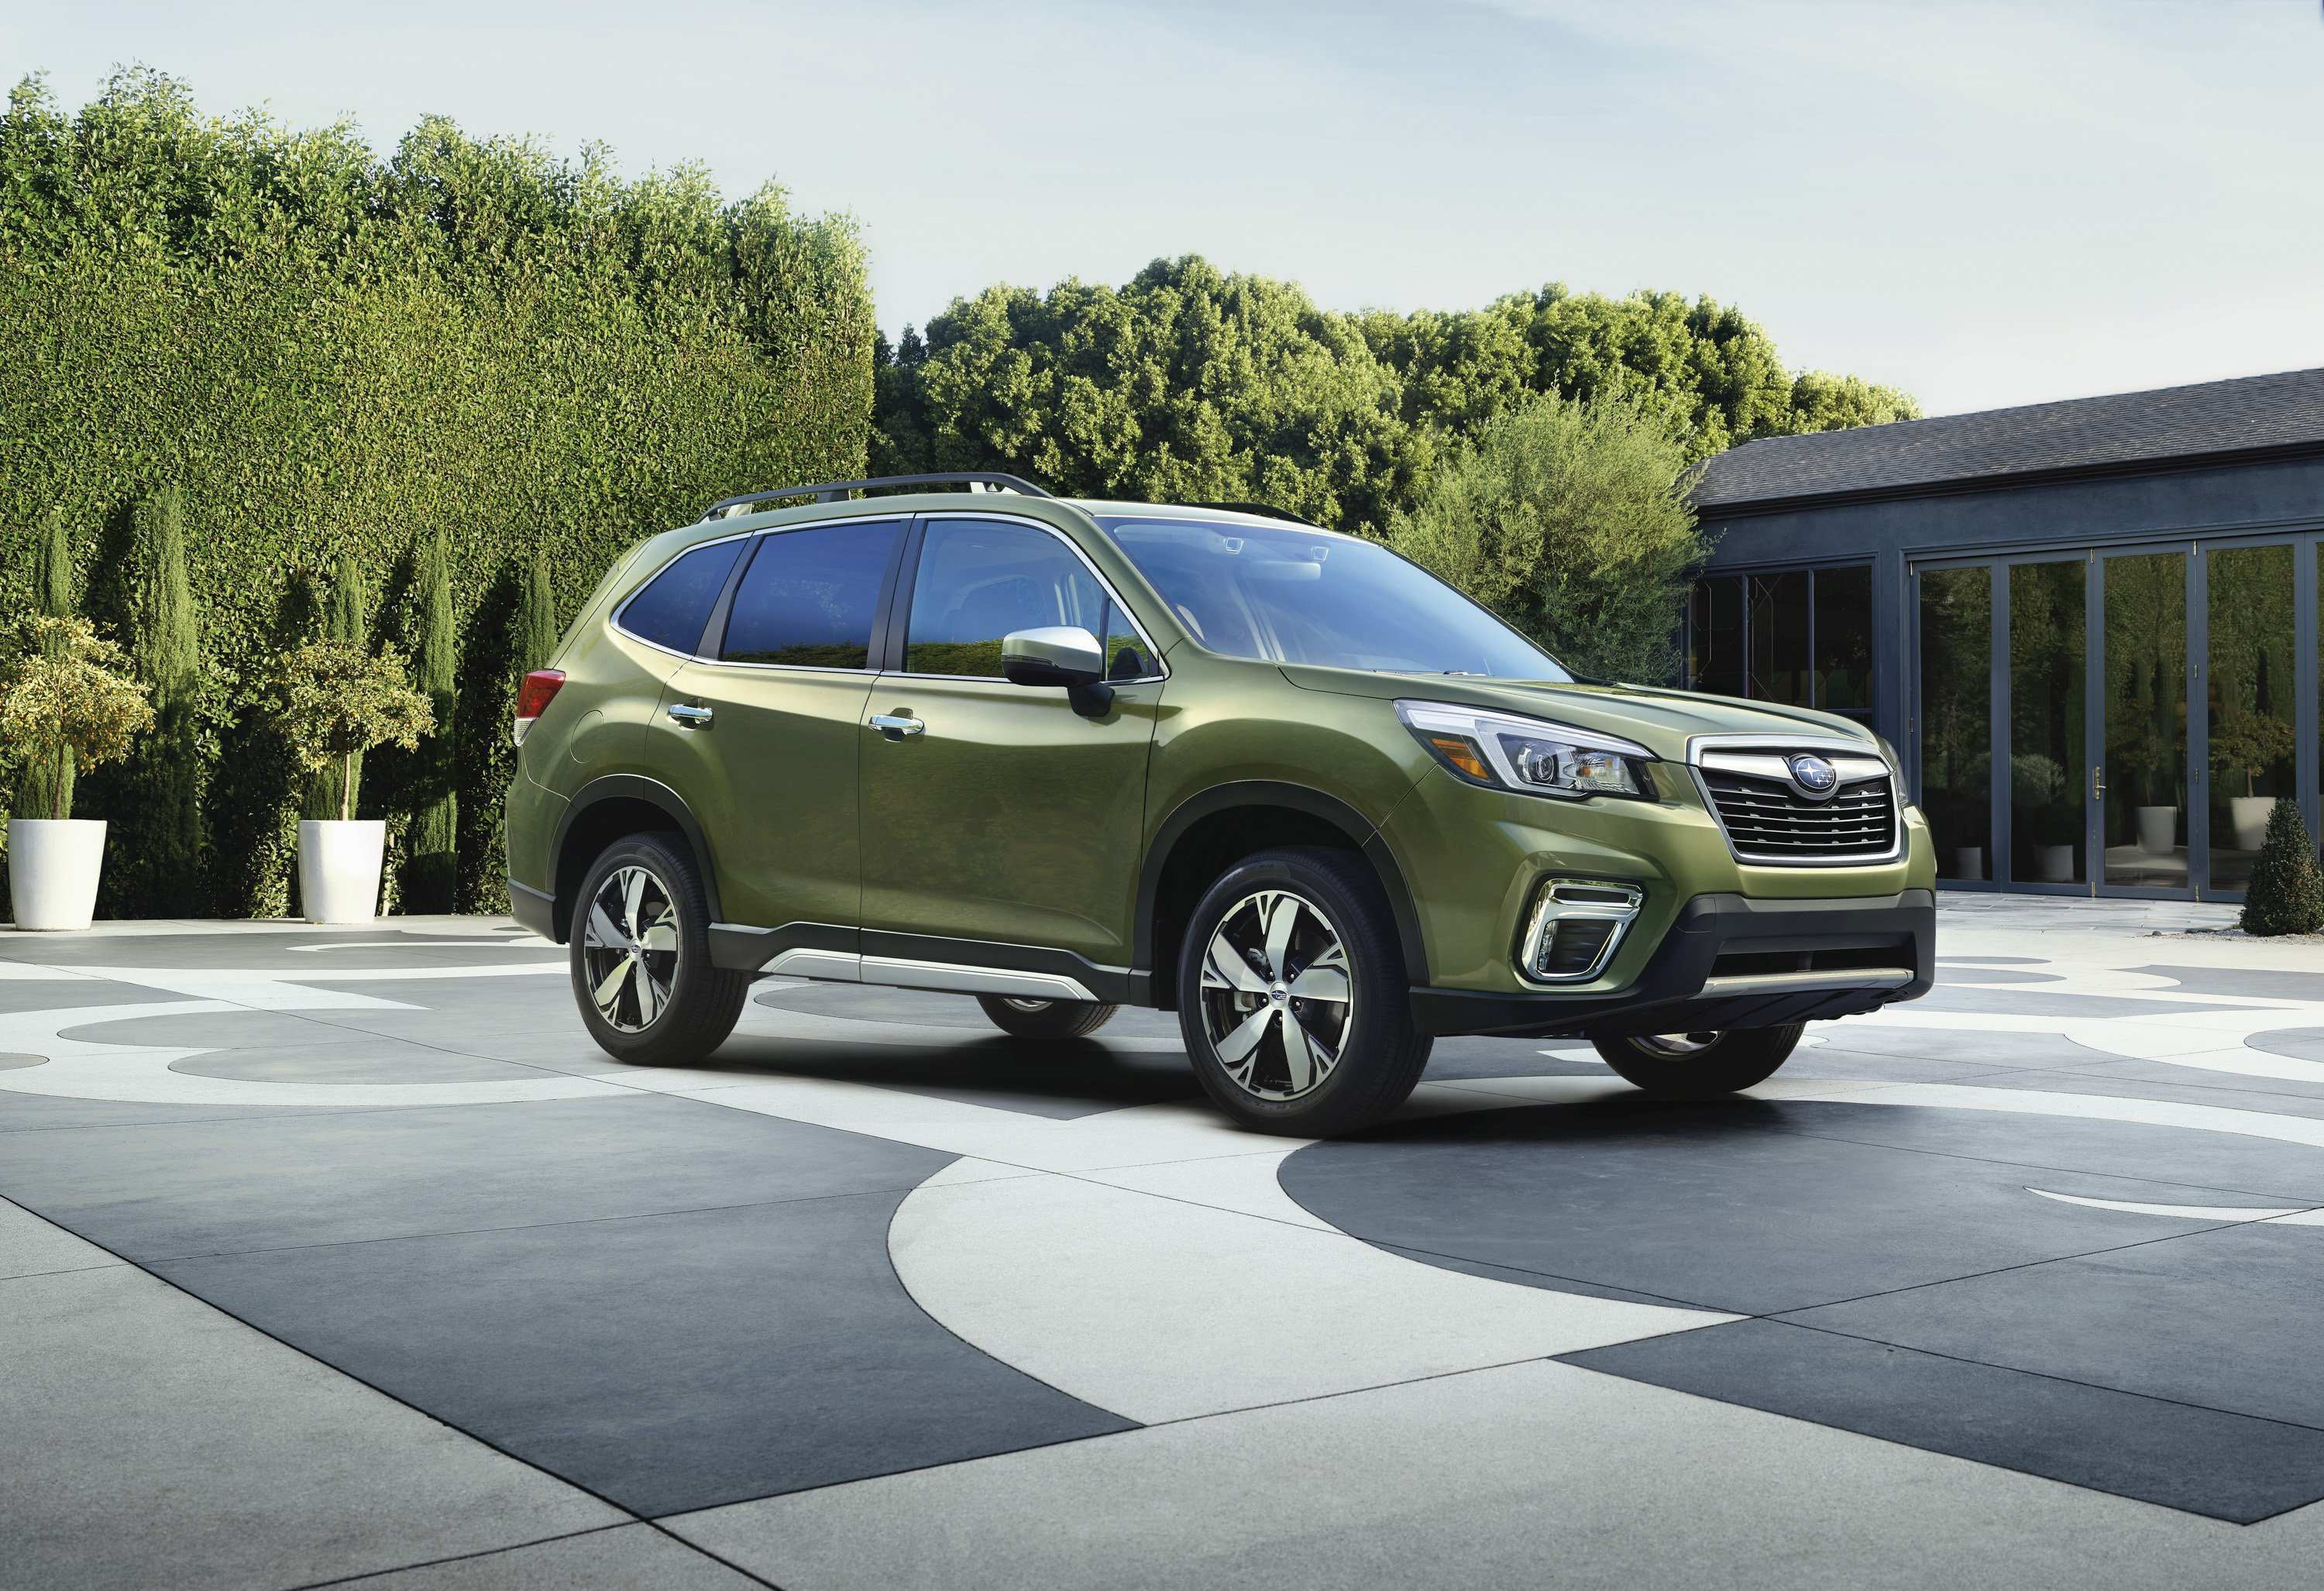 34 The 2019 Subaru Forester Xt Touring First Drive by 2019 Subaru Forester Xt Touring